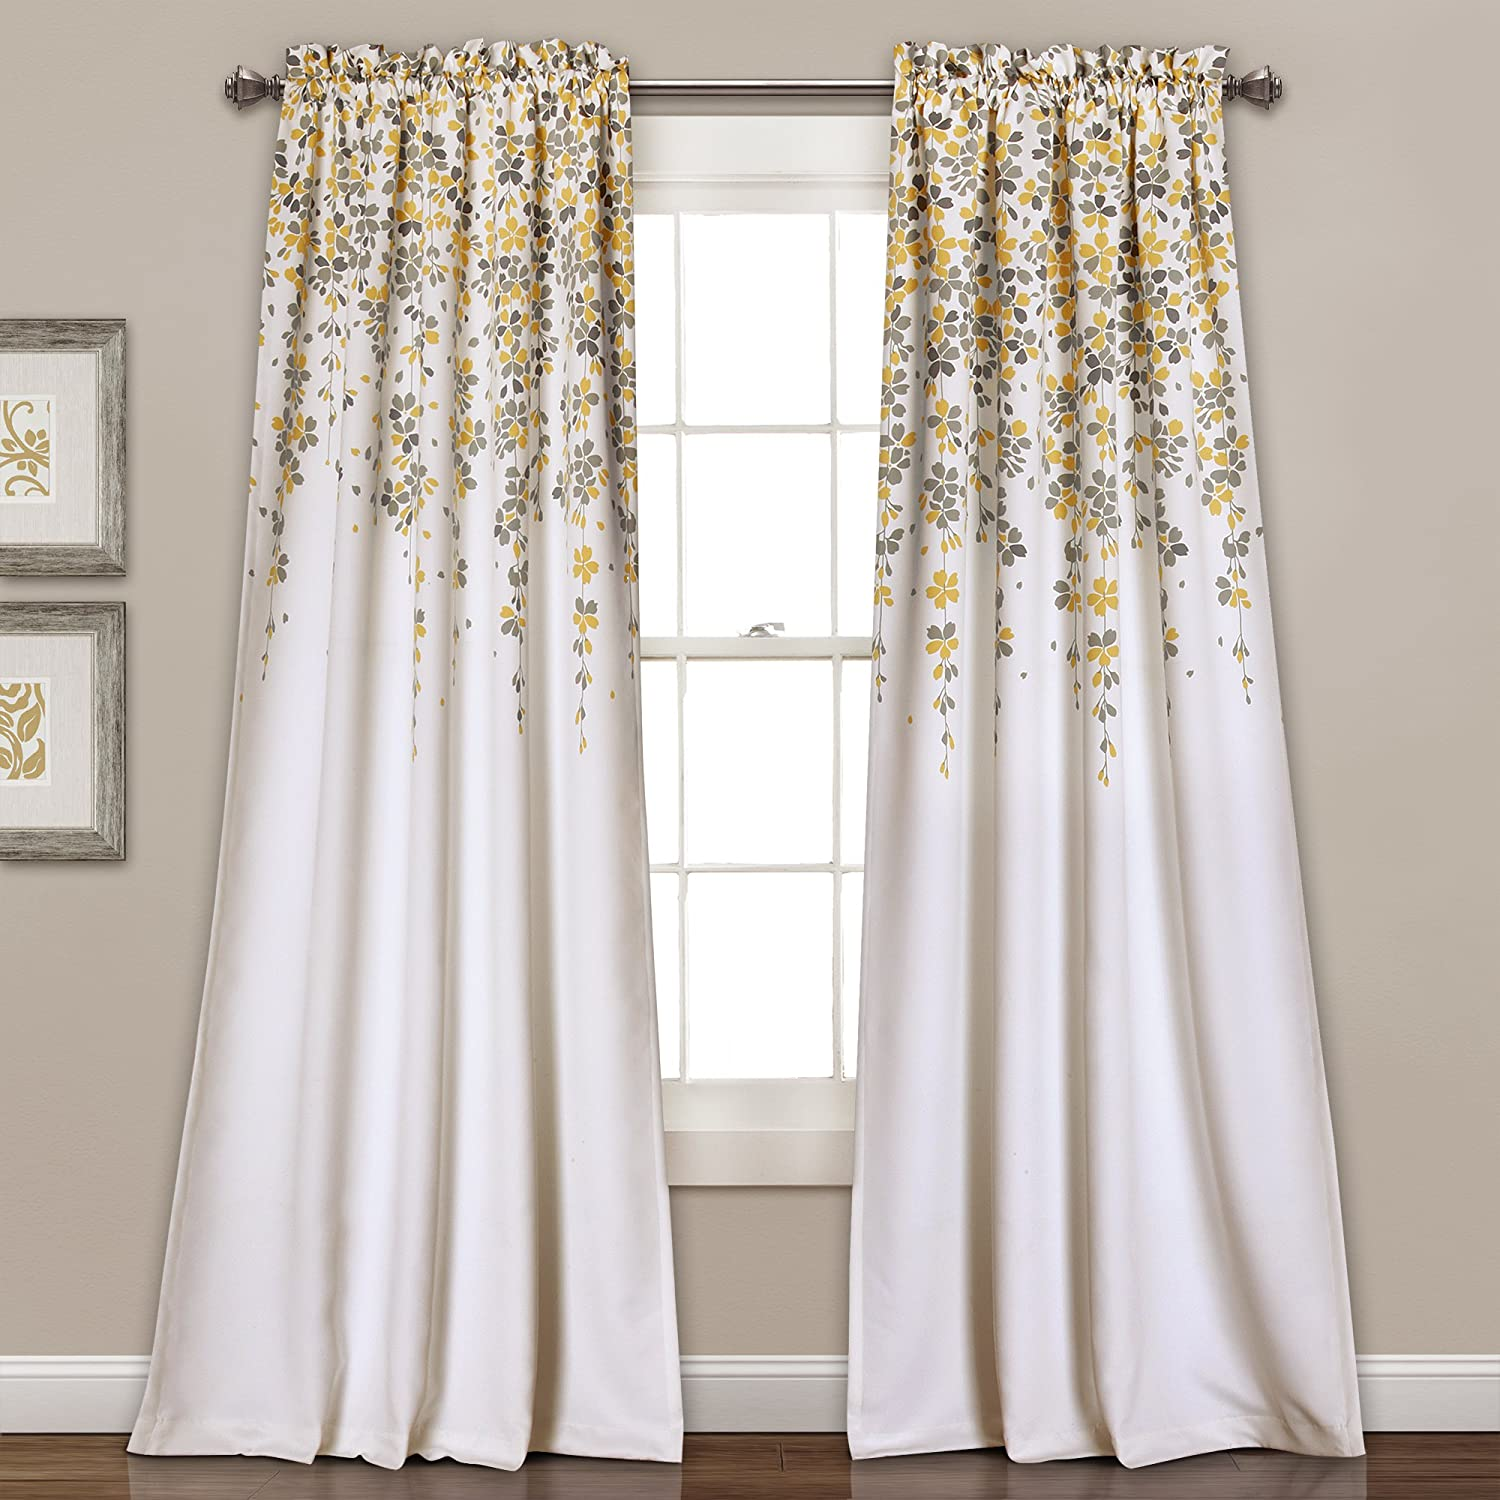 Lush Decor 16T000558 Weeping Flowers Room Darkening Window Panel Curtain Set Yellow/Gray